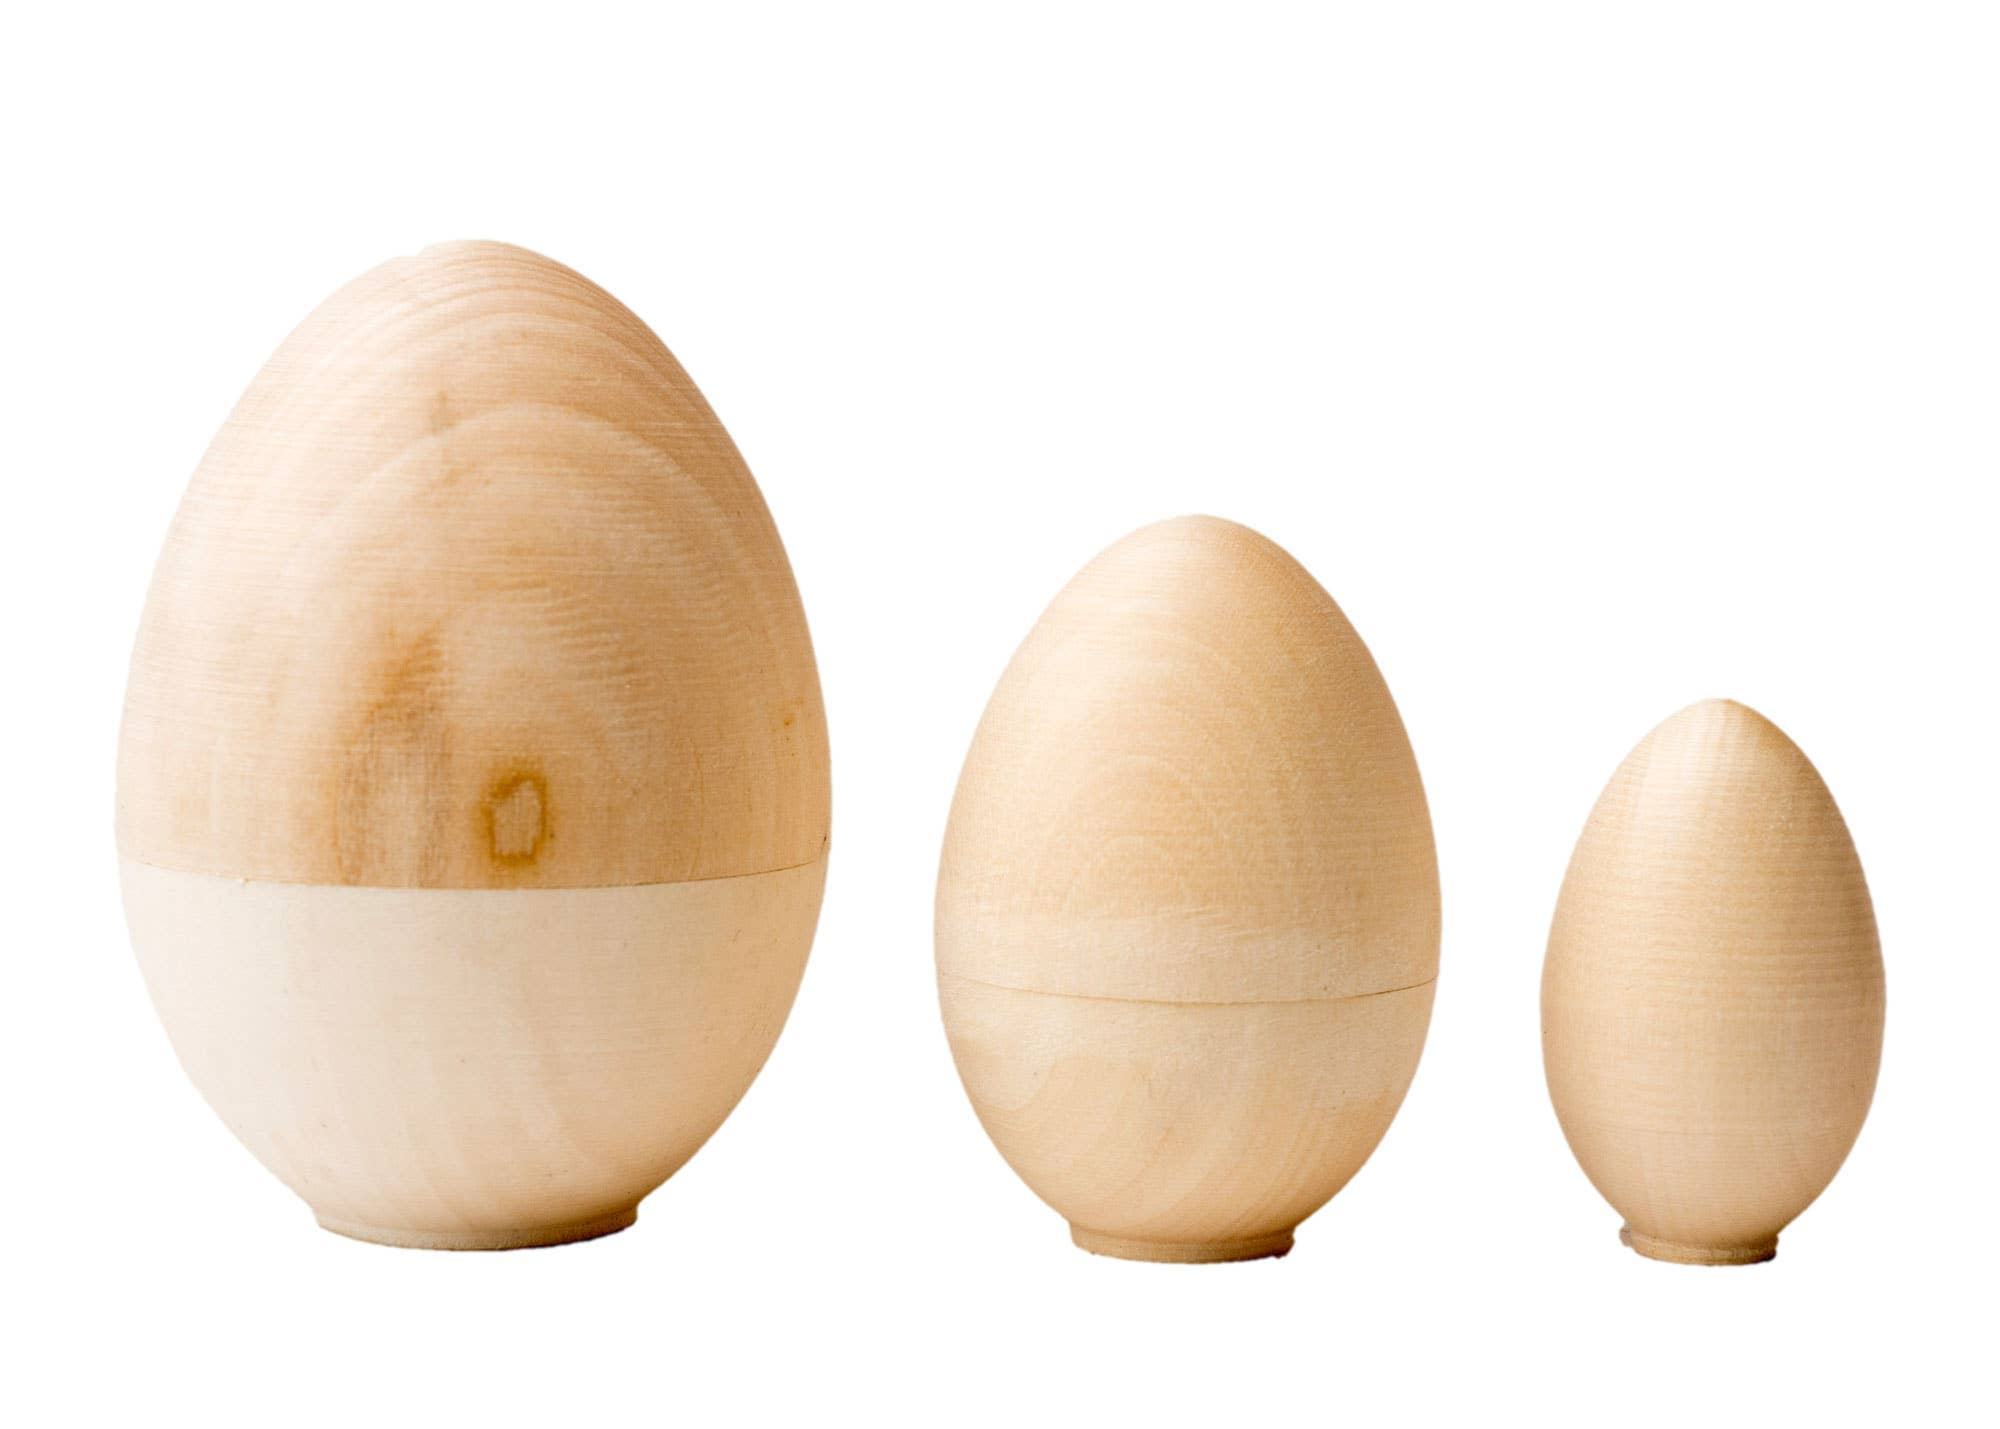 "Blank Nesting Egg 3pc./4"" - Odd Nodd Art Supply"